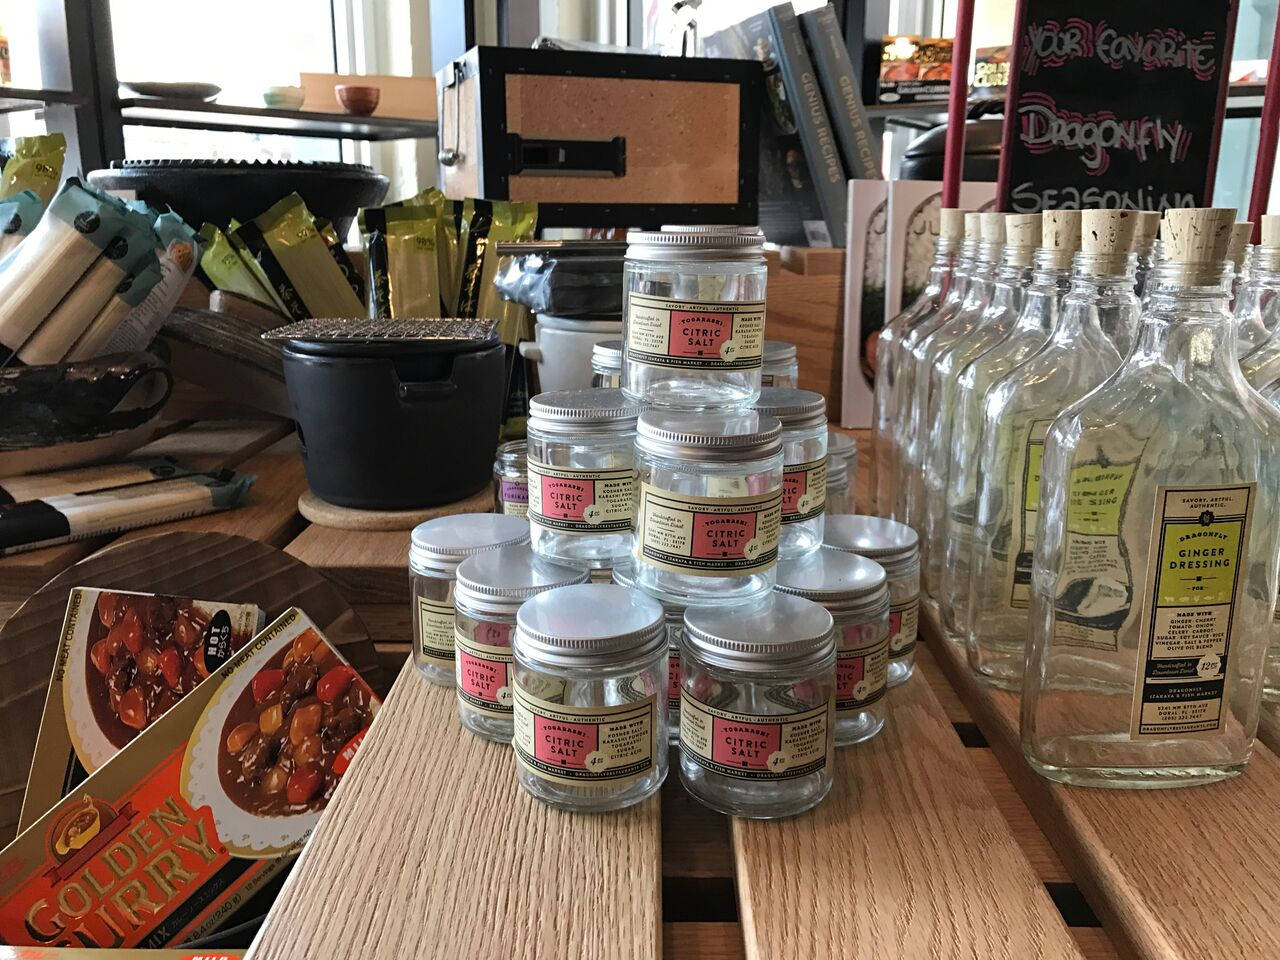 Dragonfly Doral Sauces and Seasonings